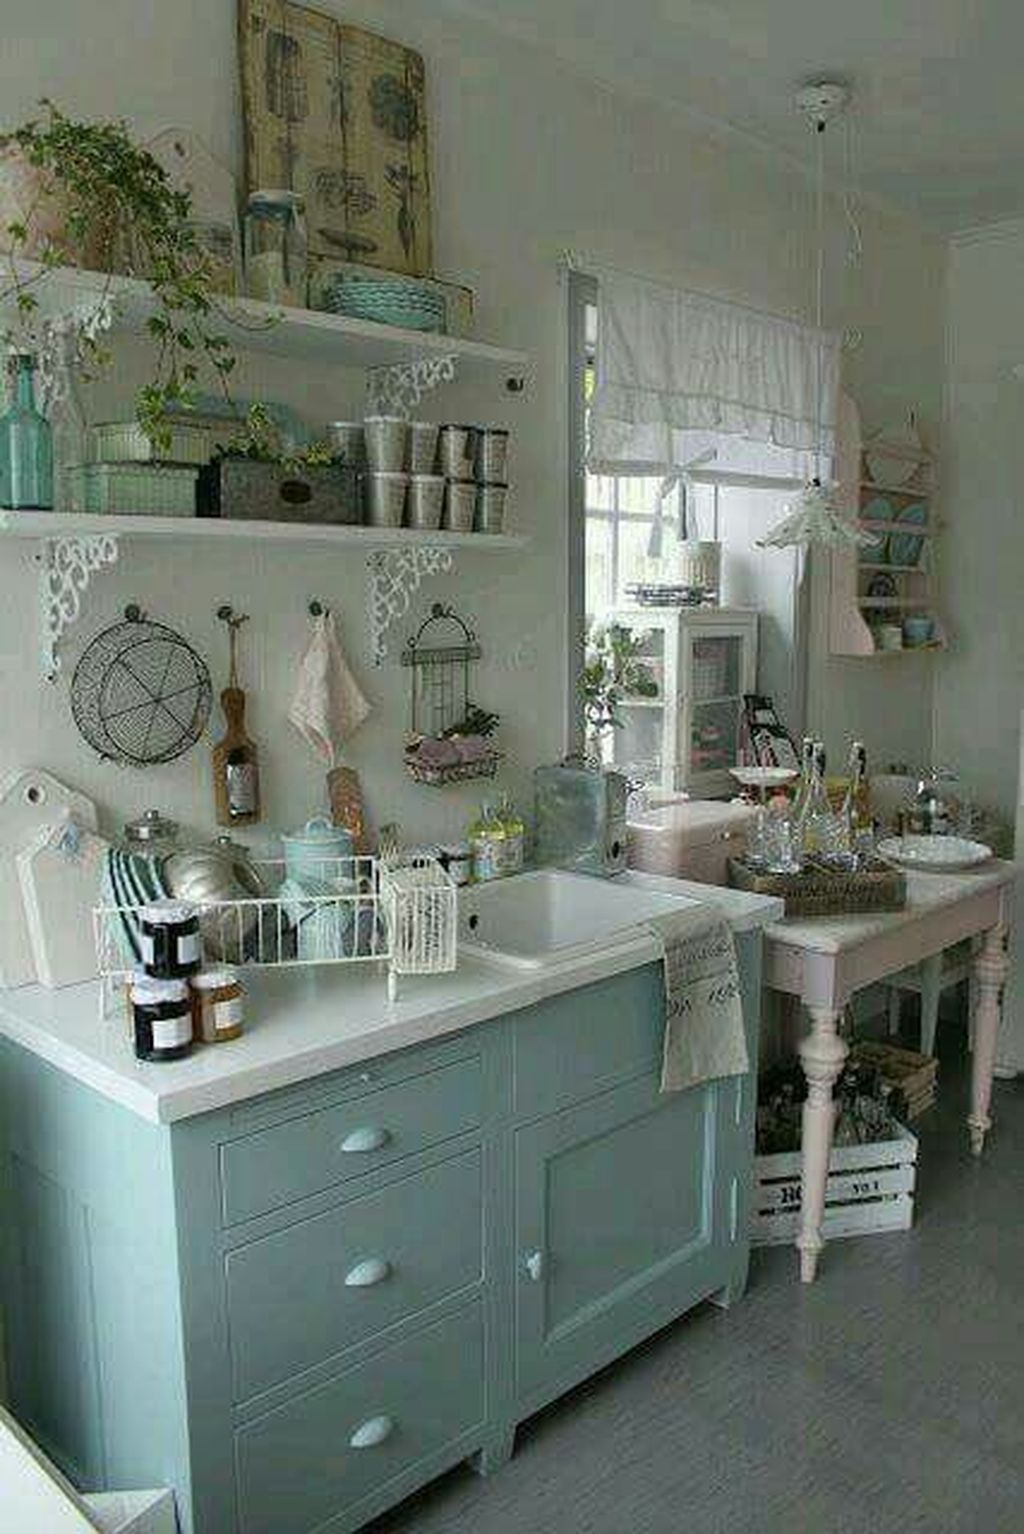 31 Stunning Farmhouse Kitchen Ideas On A Budget Ideal Integrated Timeless Trends Cottage Chic Kitchen Chic Kitchen Decor Shabby Chic Kitchen Decor